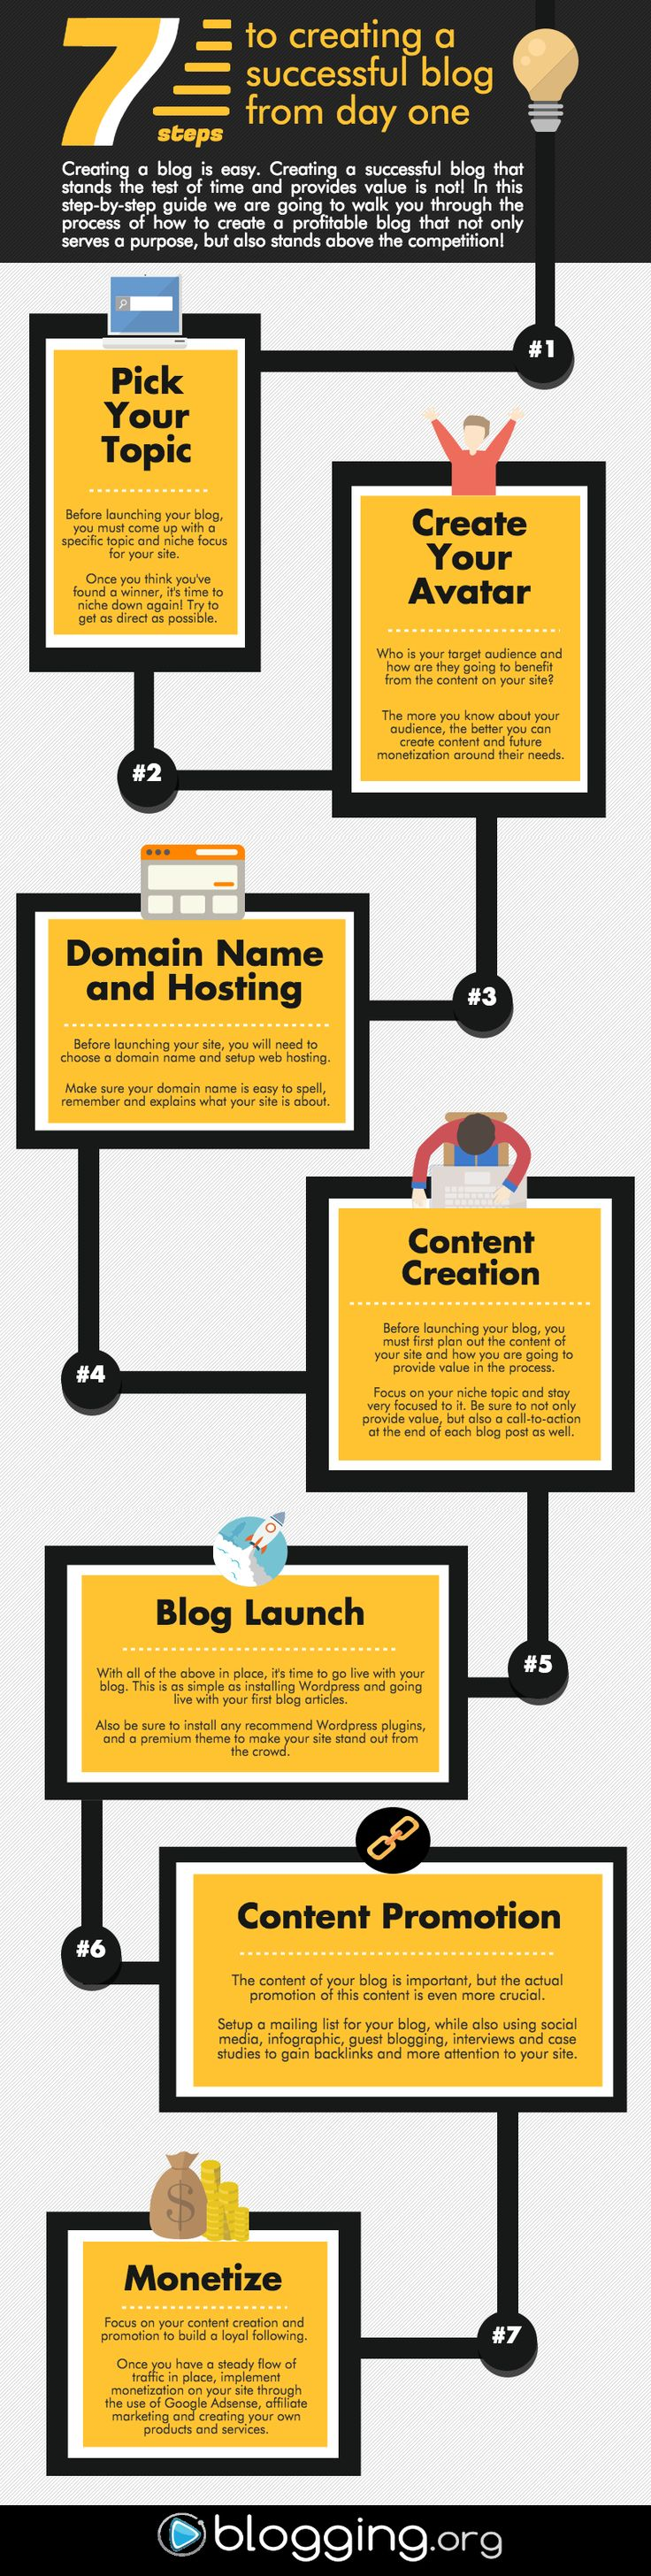 7 Steps to Creating a Successful Blog from the Start [Infographic]